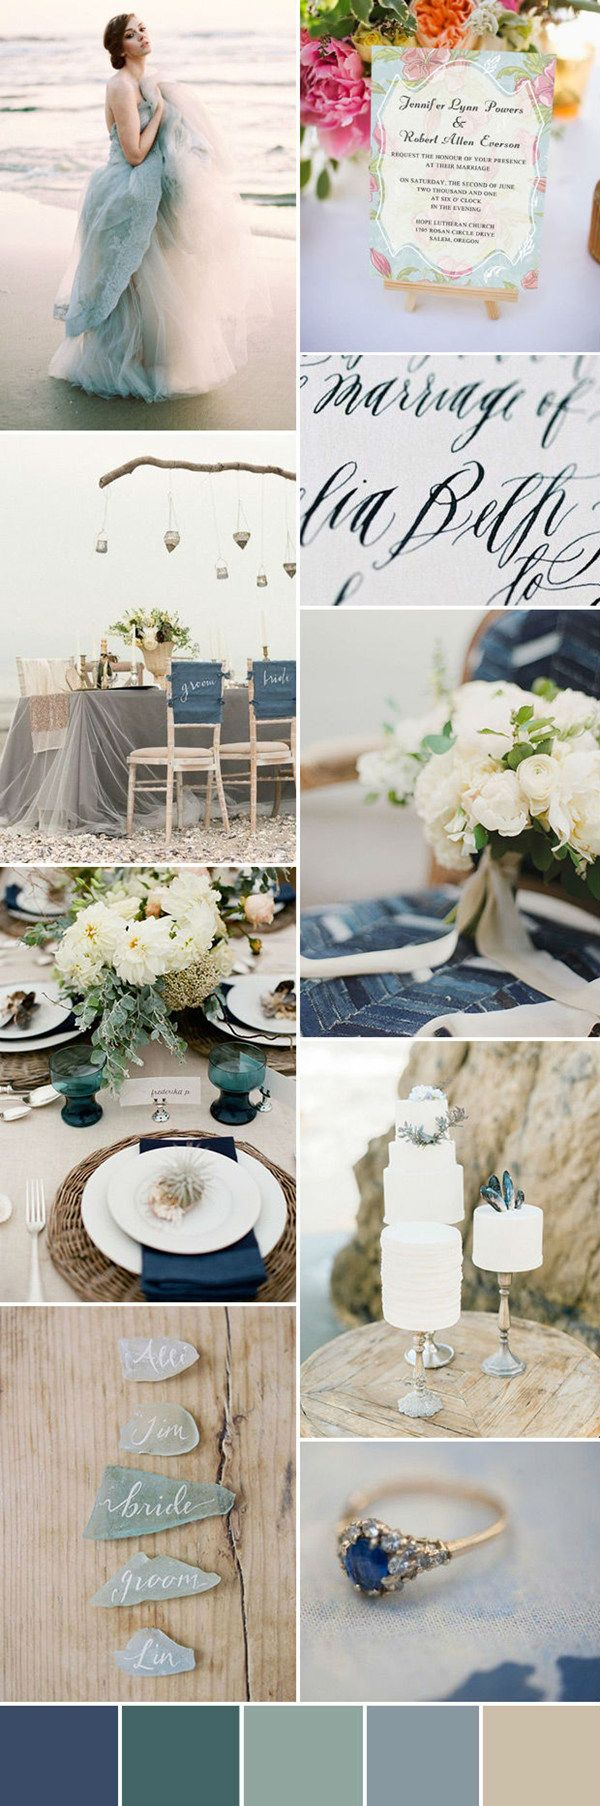 seven wonderful wedding color ideas in shades of pink | Beach ...